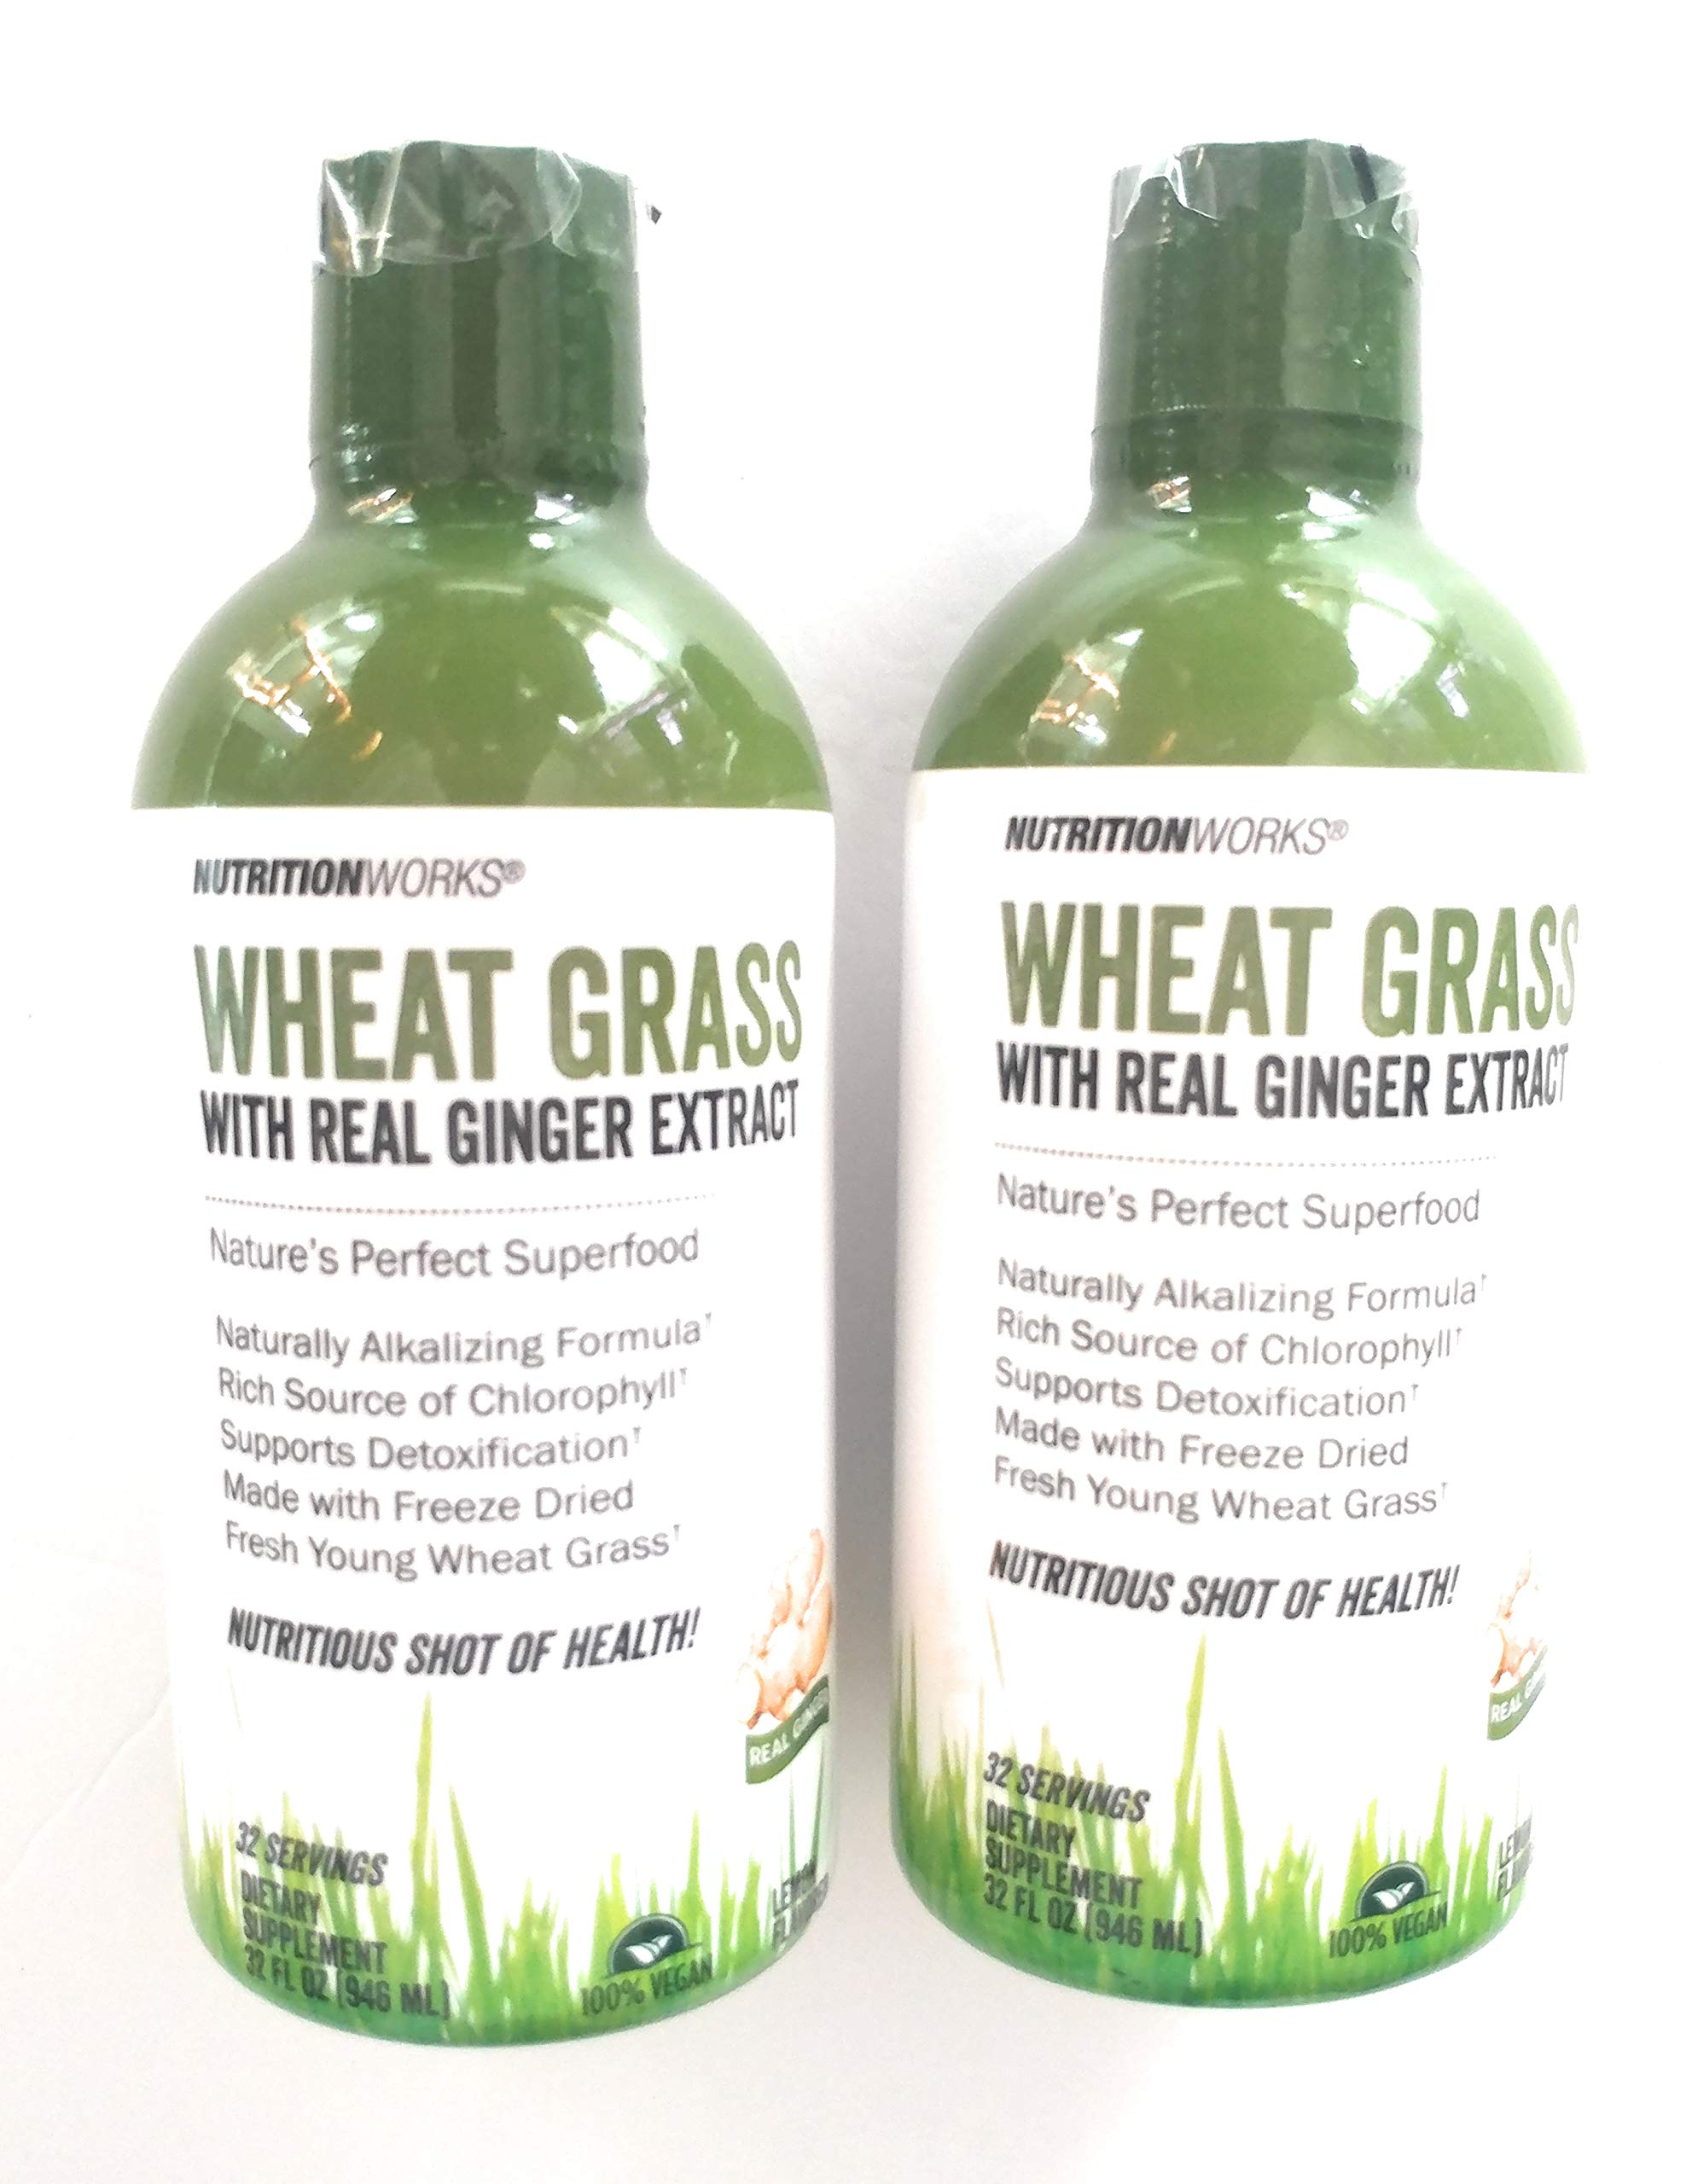 2 Bottles Wheat Grass 32 oz Each. Super Alkalizing Rich in Chlorophyll Detox with Real Ginger. Enzyme Active.